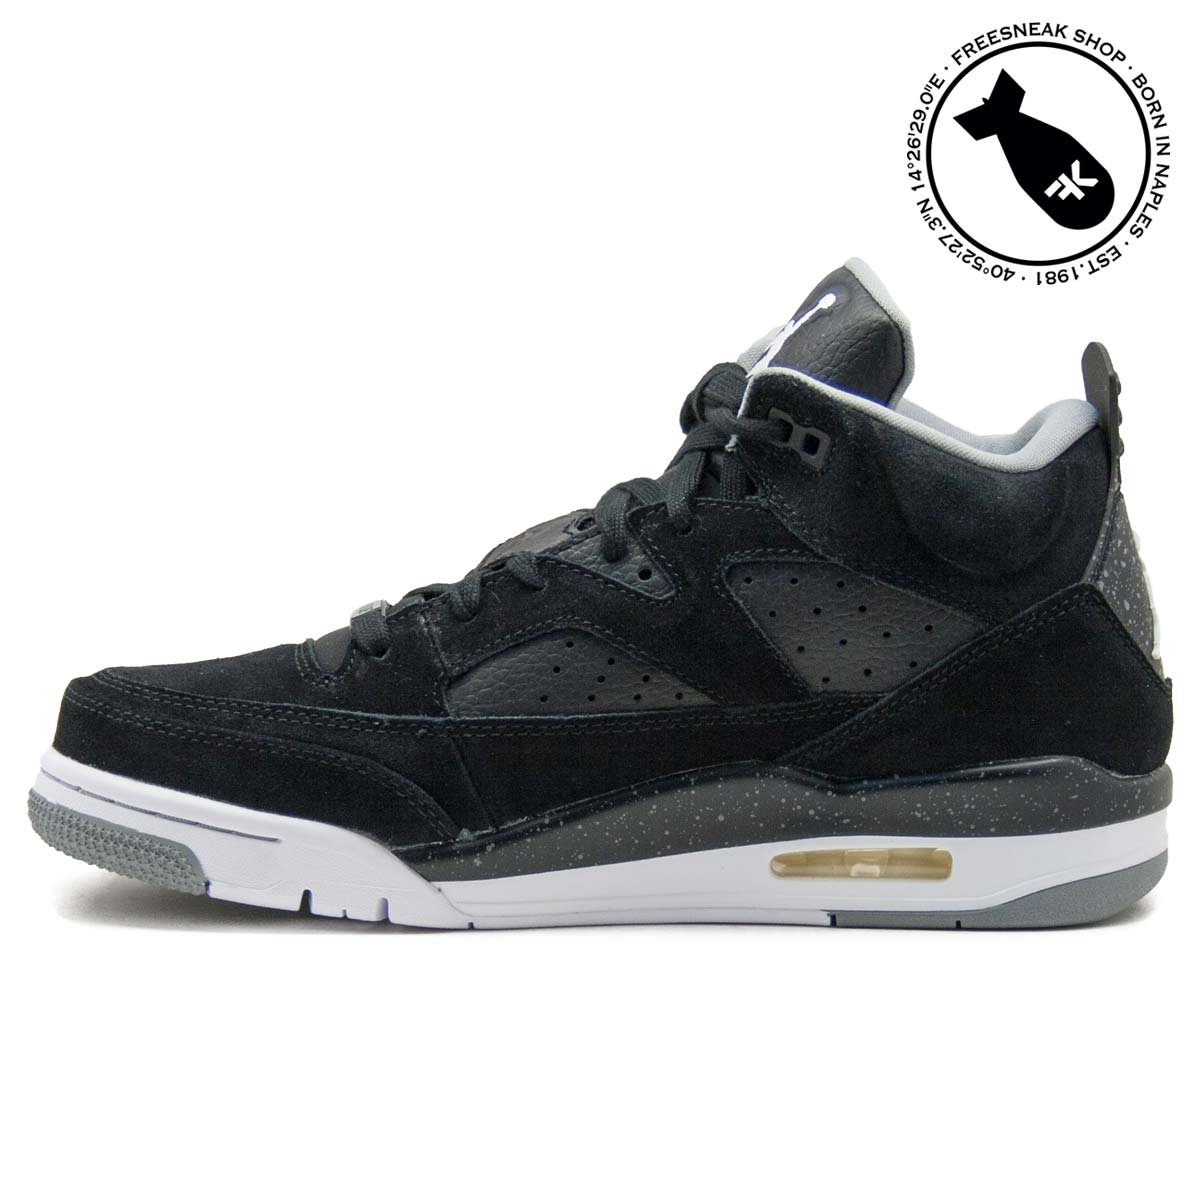 online retailer 1fb46 1fd1a Sneakers Nike Air Jordan Son Of Mars Low Suede Black 580603-001